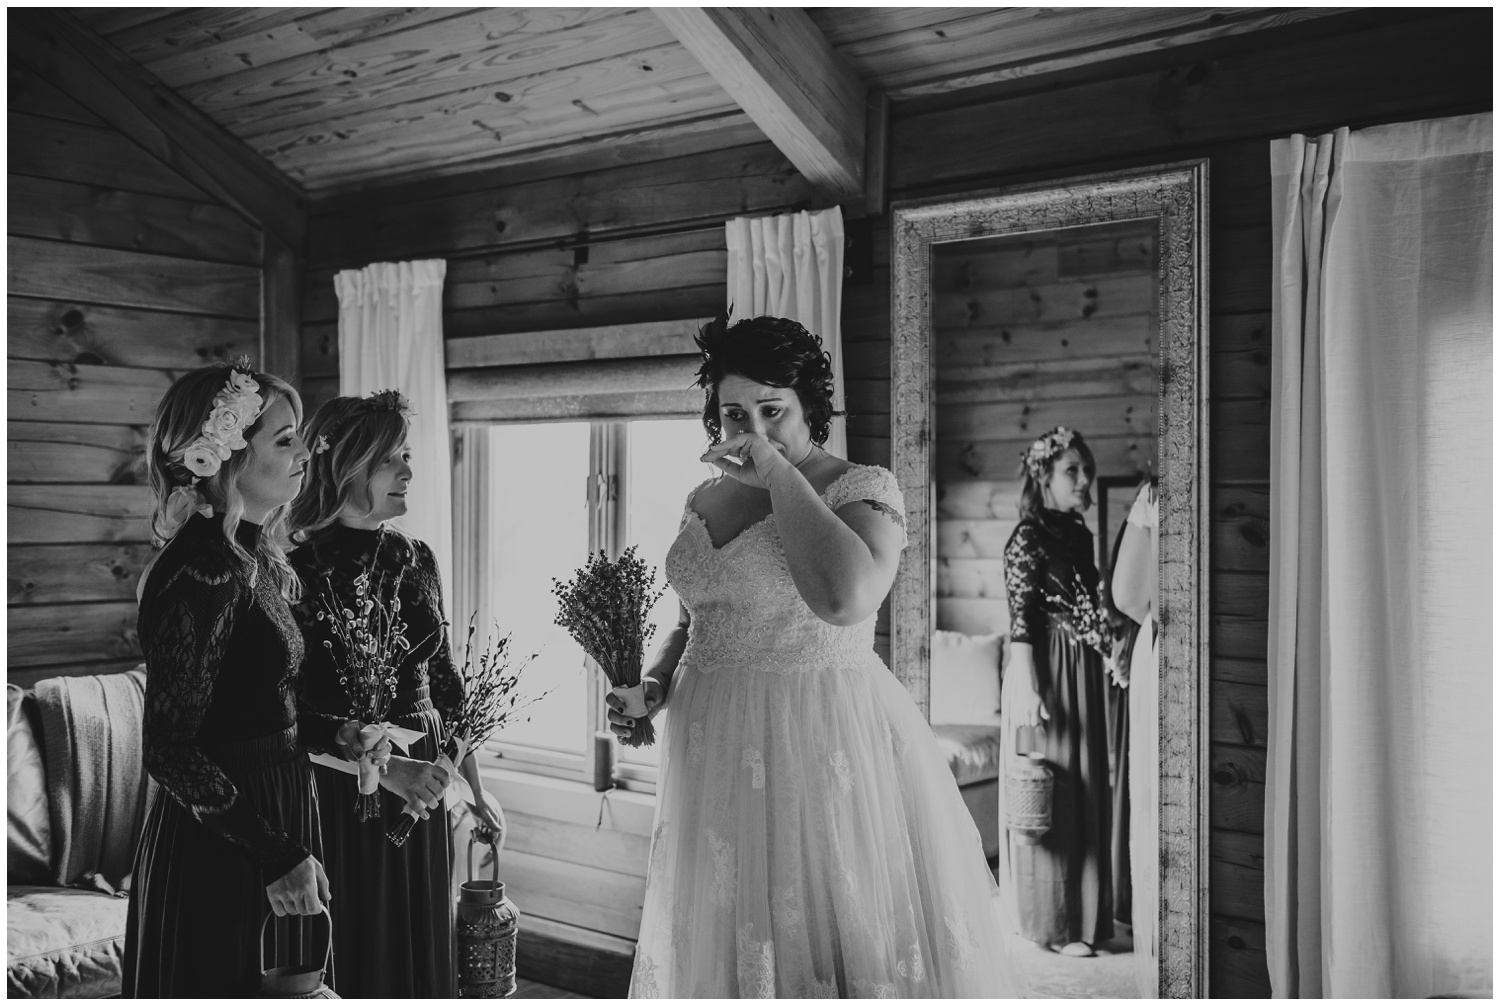 The bride having a moment with her bridesmaids before her wedding day at the Barn at Valhalla in Chapel Hill, taken by Rose Trail Images.